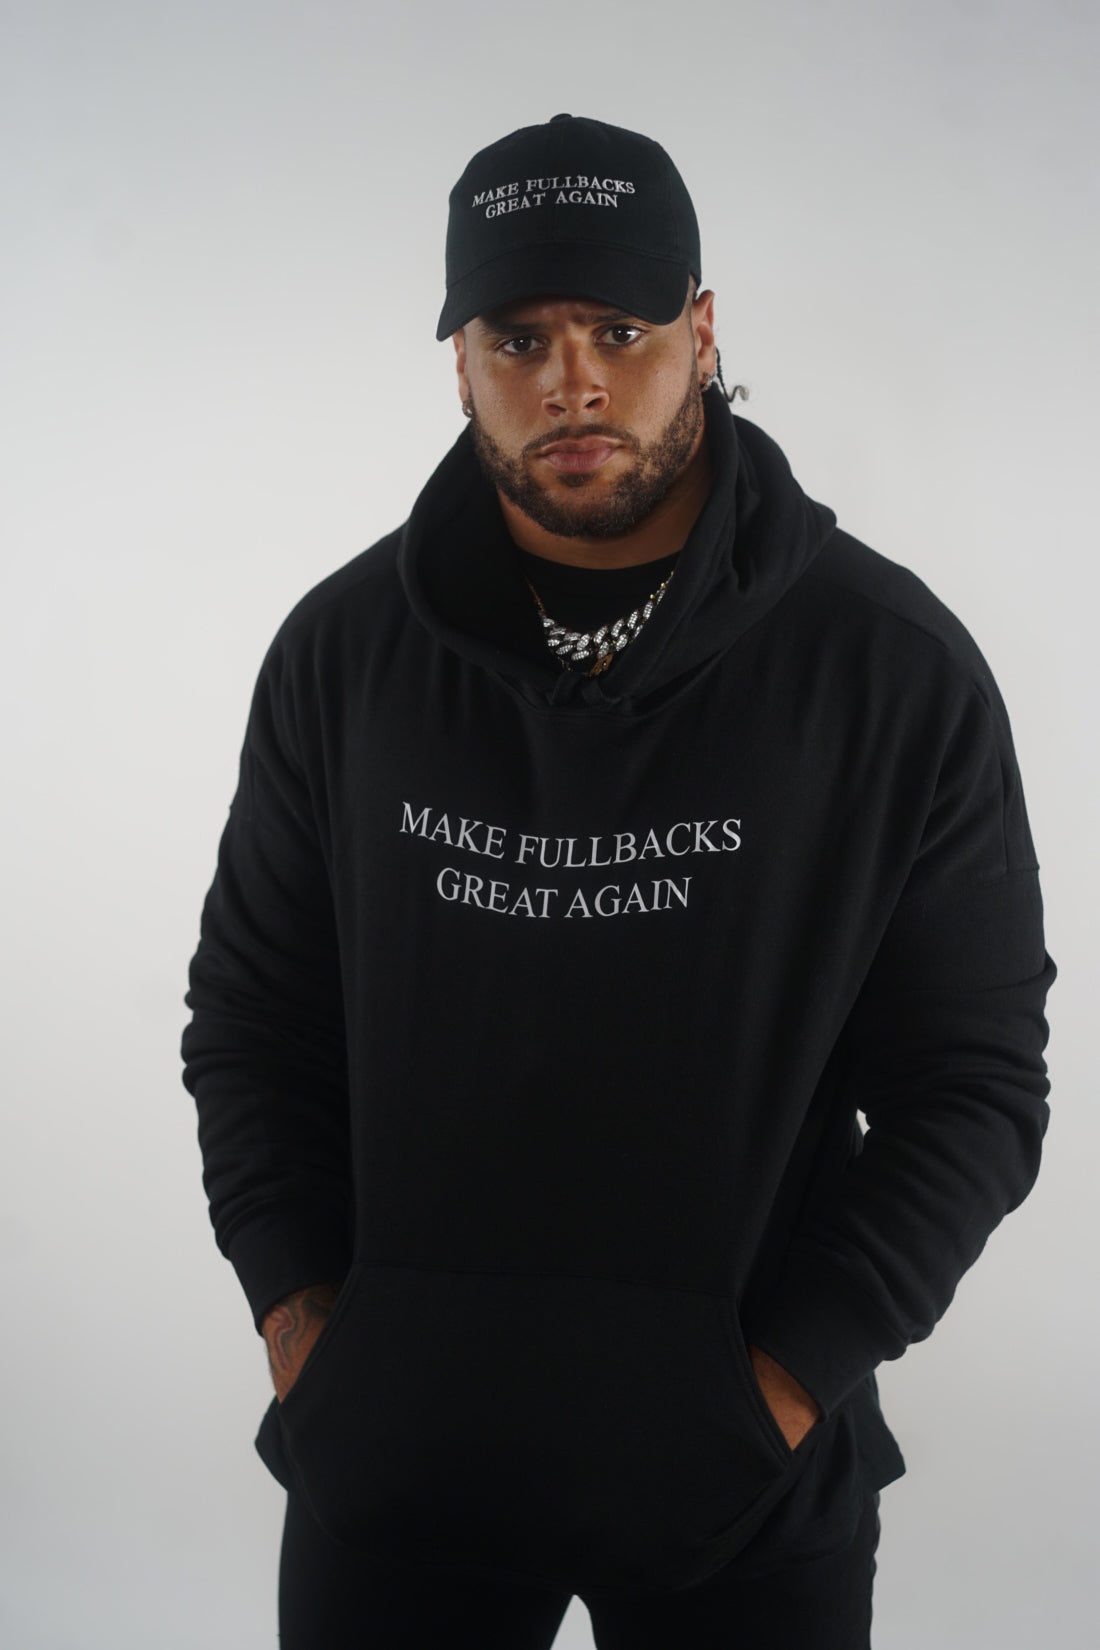 MFGA Black Dad Hat-Make Fullbacks Great Again by Keith Smith